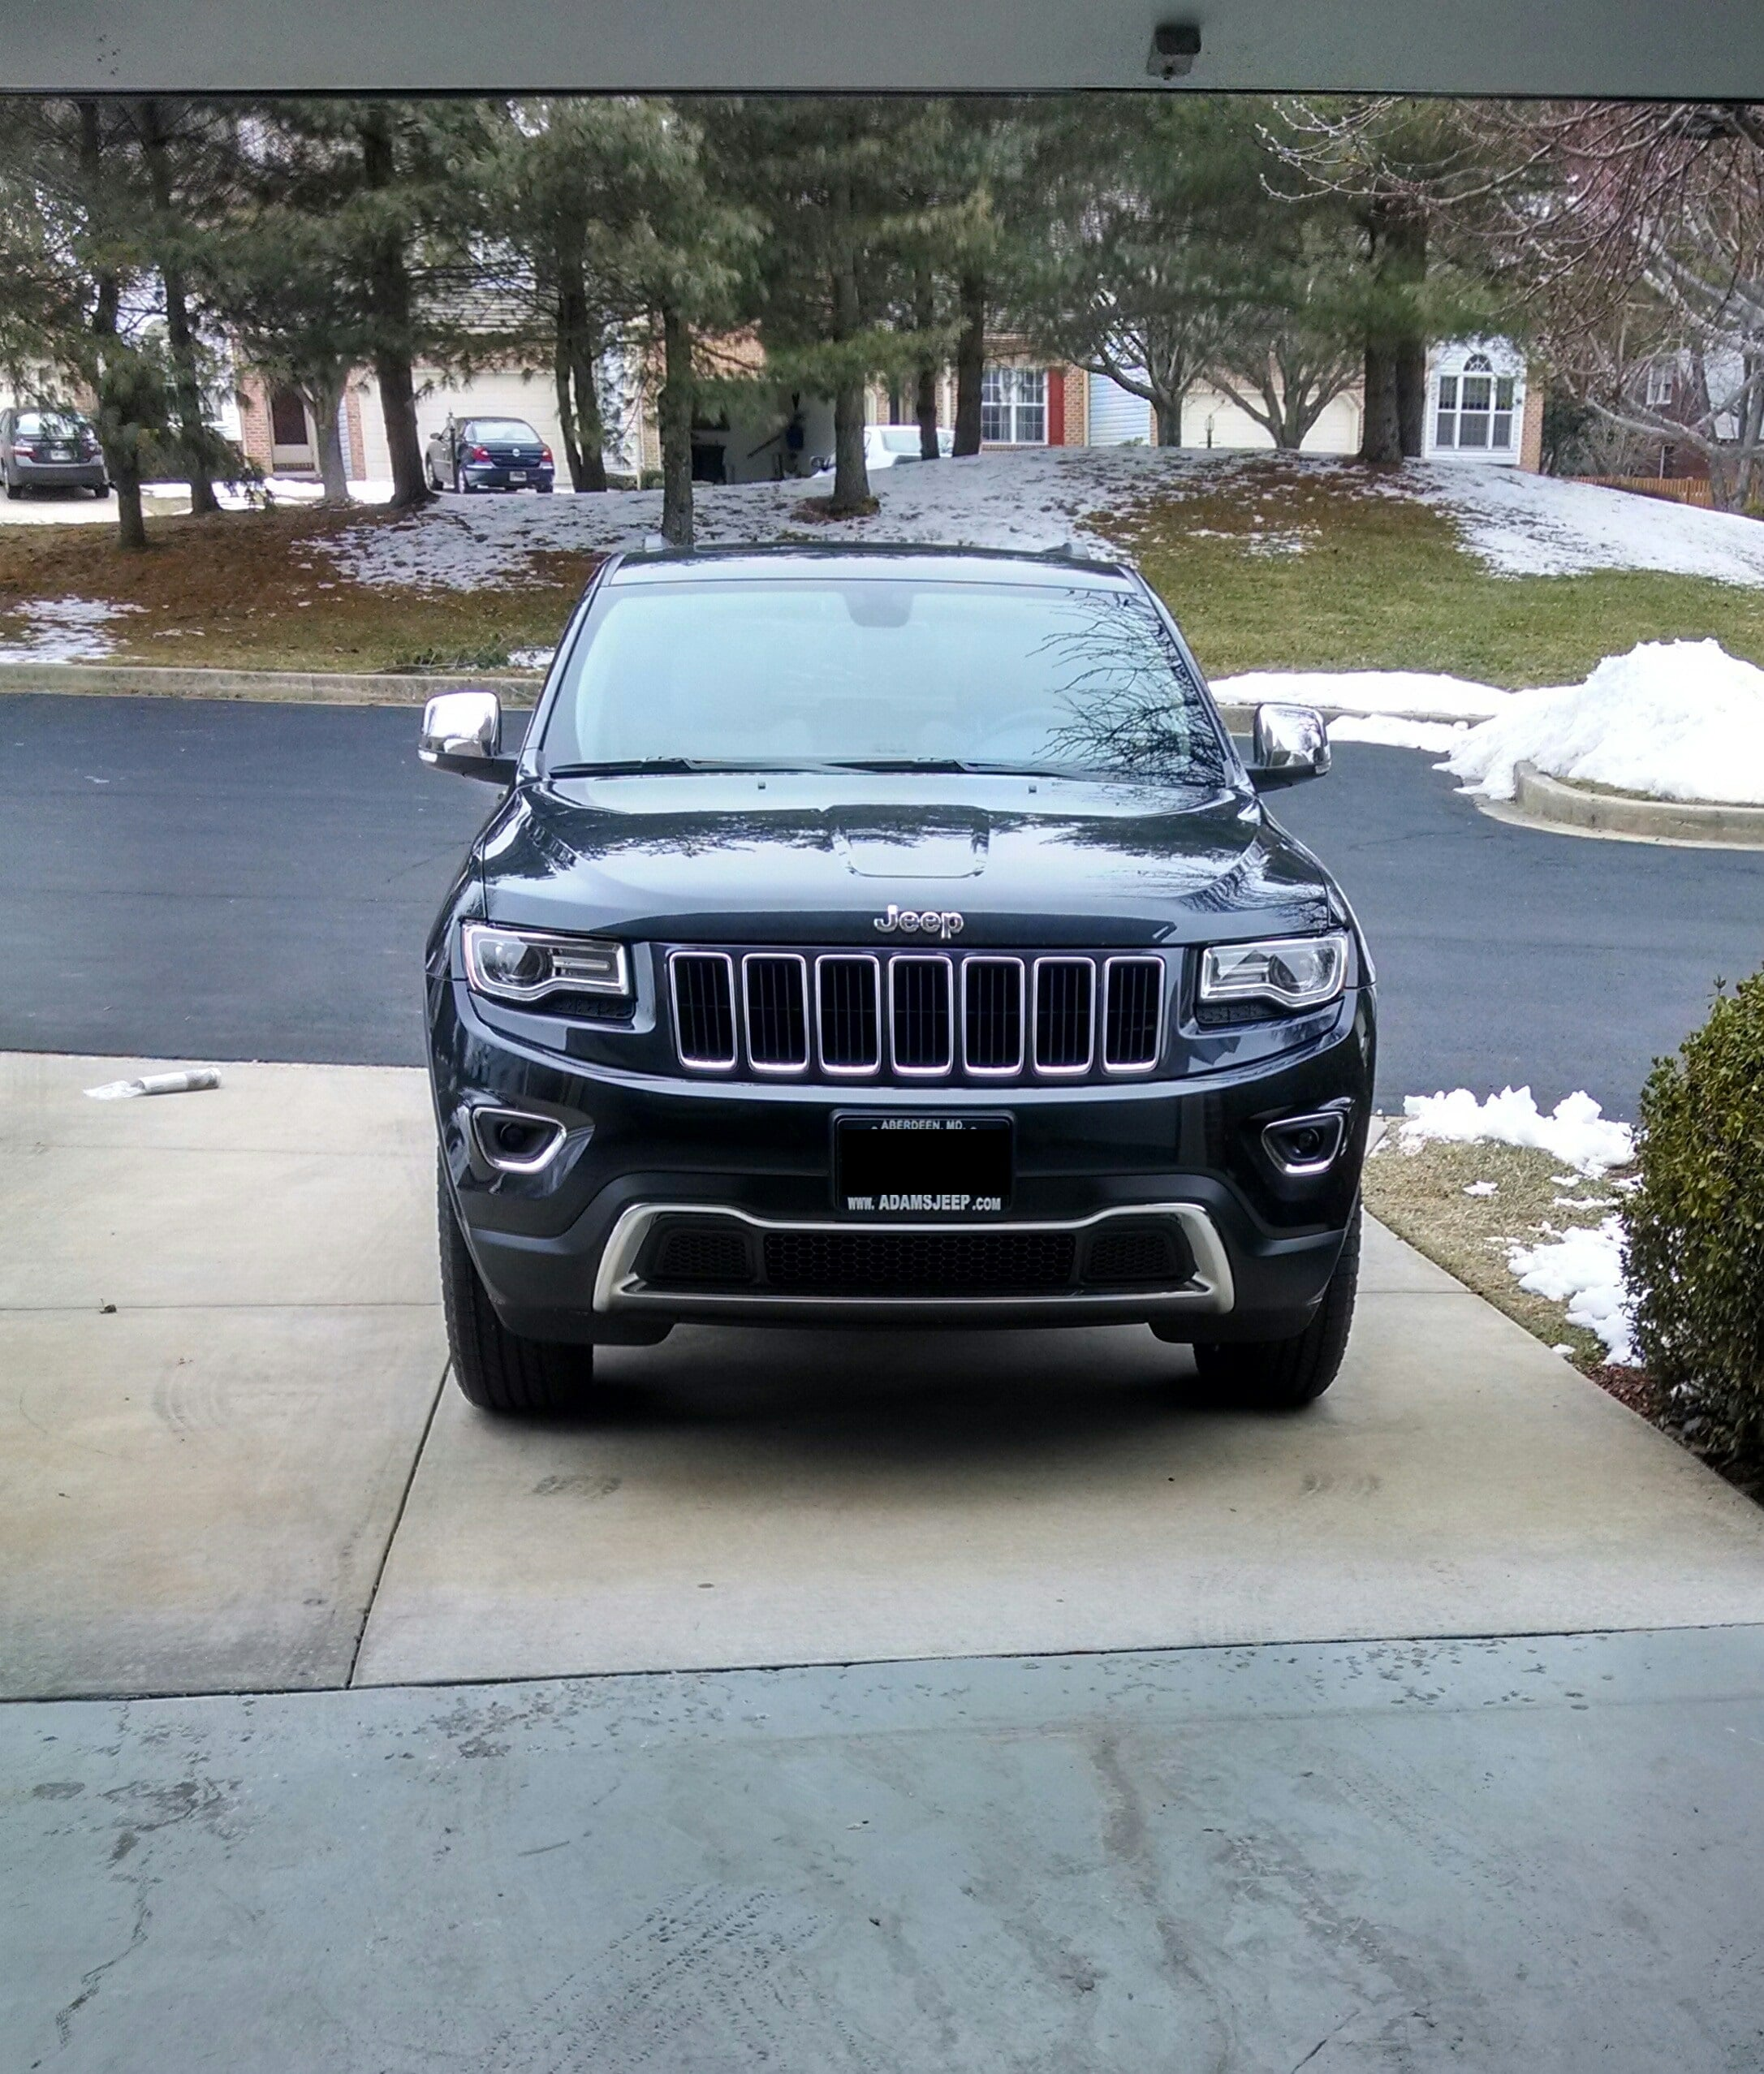 Adams jeep of maryland new jeep dealership in aberdeen for Cook motors aberdeen md